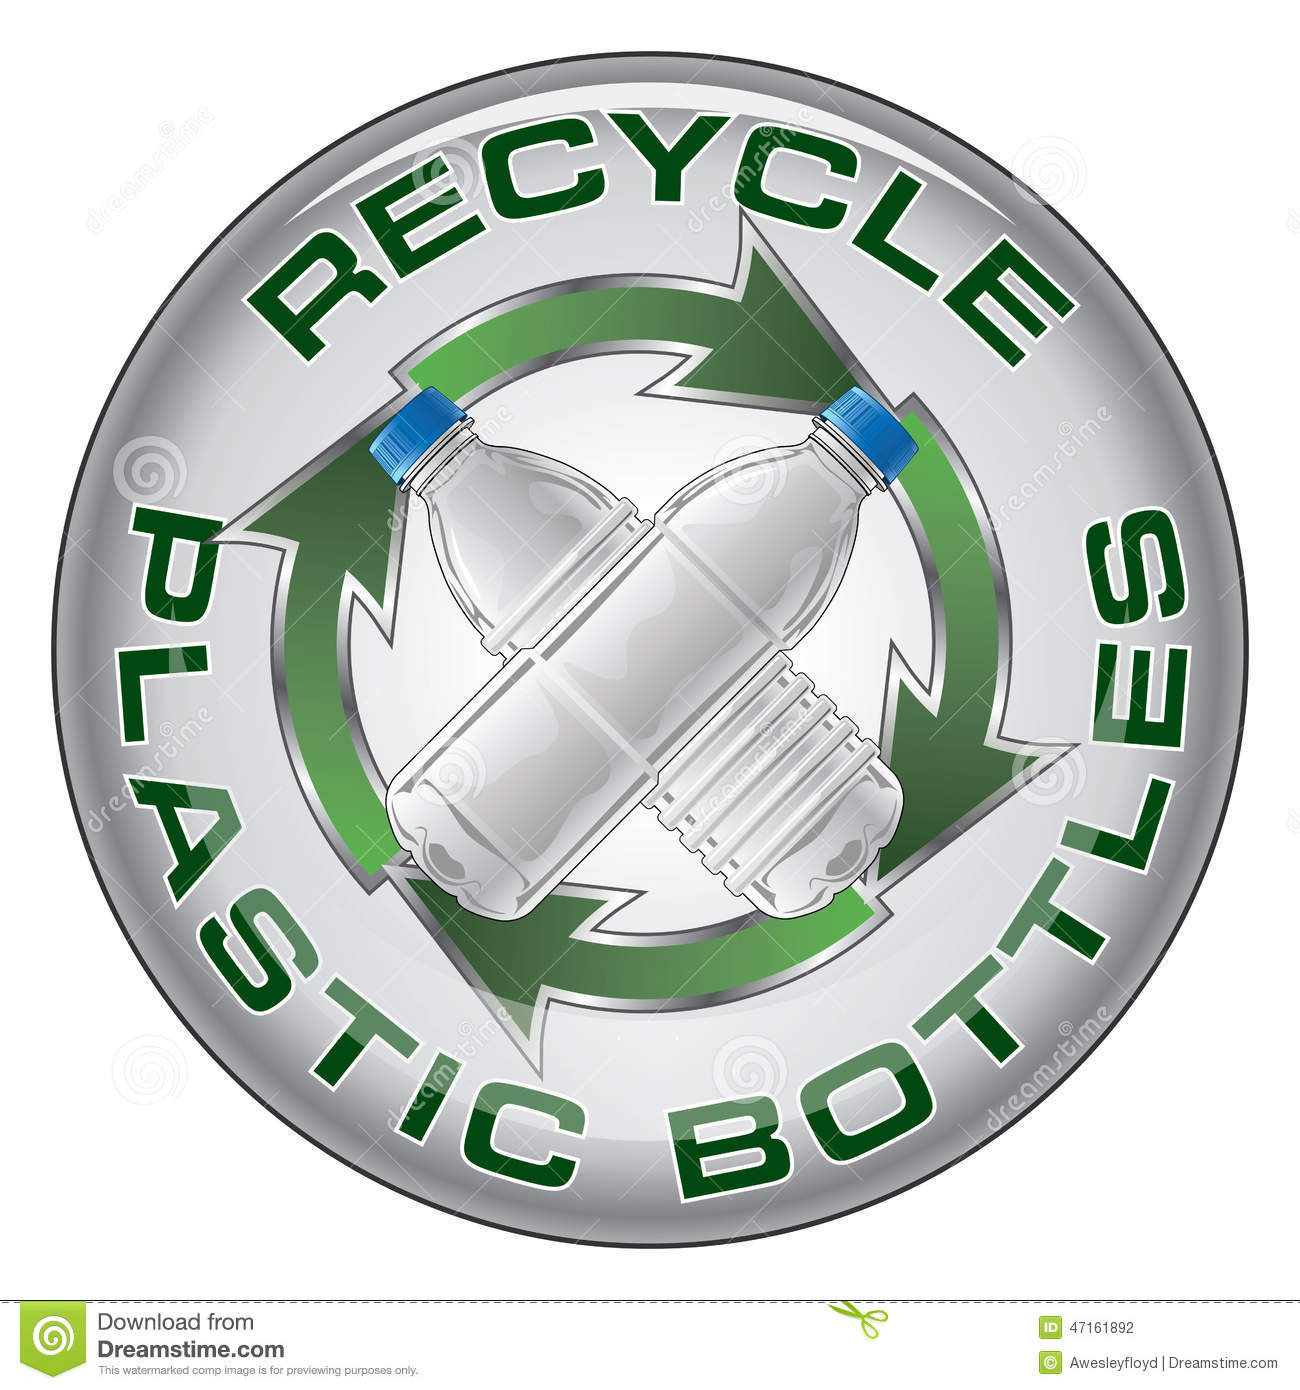 Recycle plastic design stock vector illustration of reuse 47161892 recycle plastic design buycottarizona Choice Image